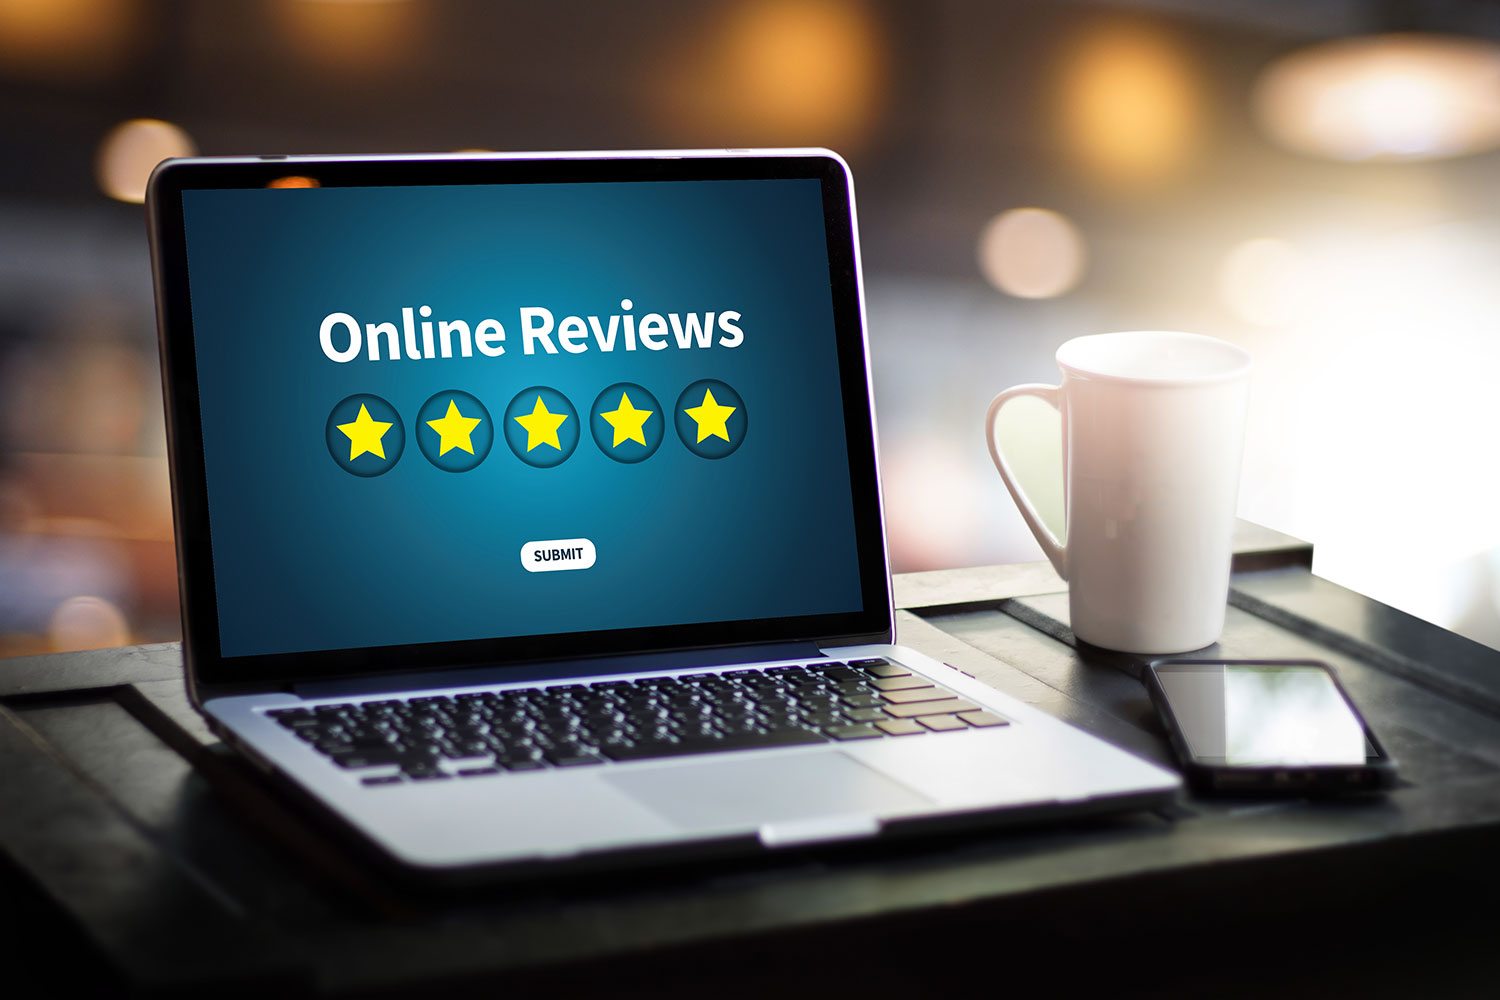 How To Use Client Reviews To Your Advantage